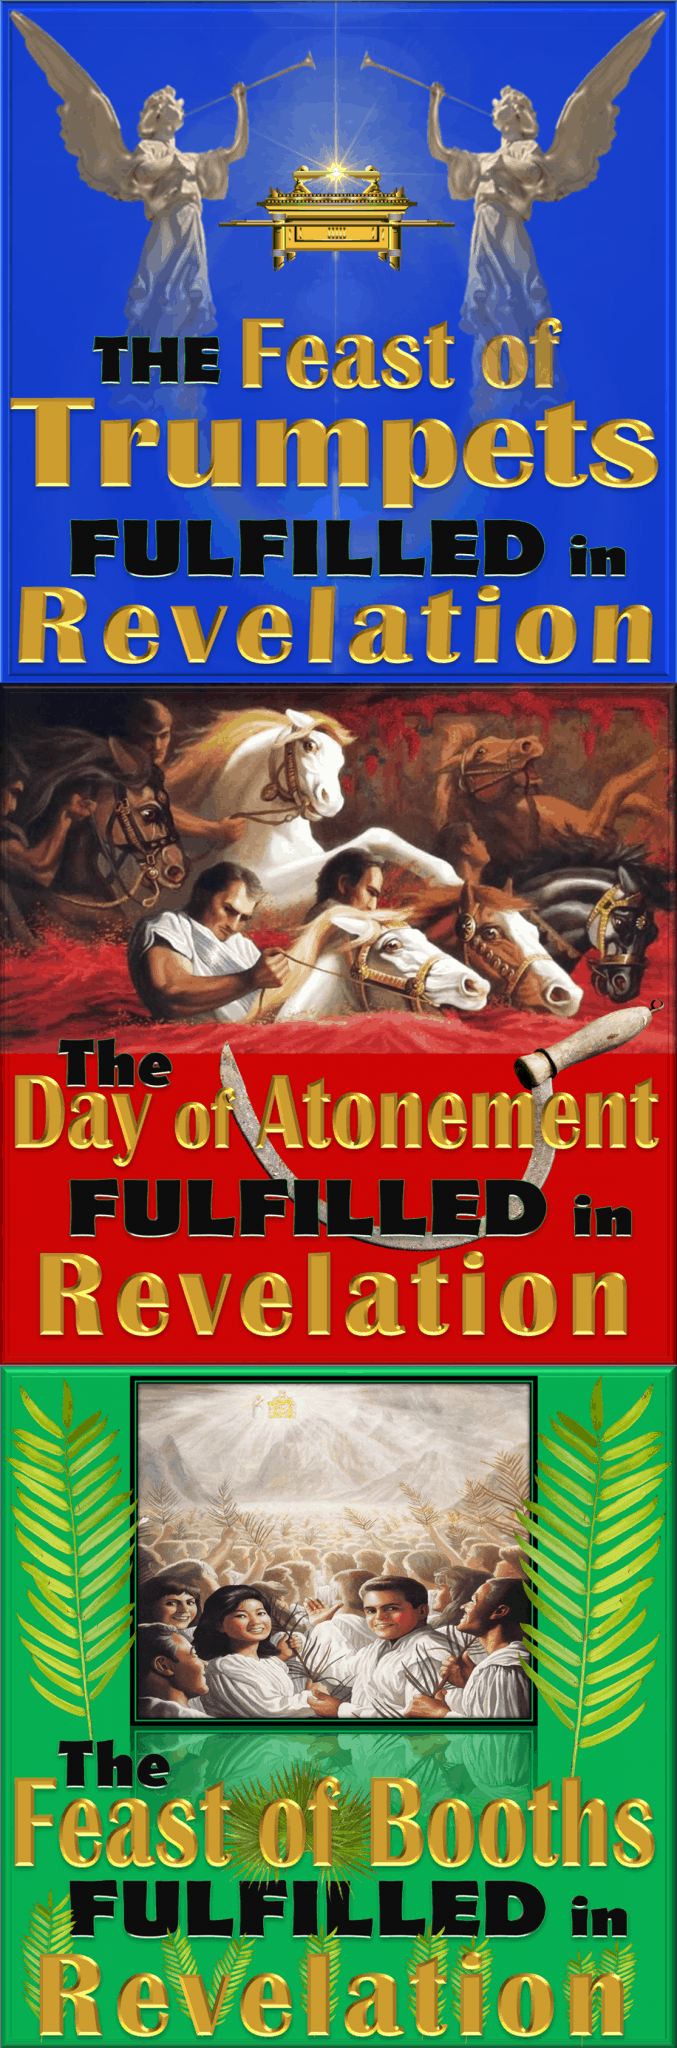 7 Seals,Book of Revelation,Seven Seals,First Seal,Second Seal,Third Seal,Fourth Seal,Fifth Seal,Sixth Seal,Seventh Seal,Revelation Chapter 4,Revelation Chapter 5,Revelation Chapter 6,Revelation Chapter 7,7 Trumpets,Seven Trumpets,First Trumpet,Second Trumpet,Third Trumpet,Fourth Trumpet,Fifth Trumpet,Sixth Trumpet,Seventh Trumpet,Book of Revelation,Picture Gallery,Album,Revelation Chapter 8,Revelation Chapter 9,Revelation Chapter 10,Revelation Chapter 11,Seven Vials of Wrath,7 Vials,7 Bowls,Seven Bowls,wrath,Picture Gallery,Book of Revelation,First Vial,Second Vial,Third Vial,Fourth Vial,Fifth Vial,Sixth Vial,Seventh Vial,Revelation Chapter 15,Revelation Chapter 16, Revelation Chapter 19,Armageddon,7 Bowls of Wrath,First Bowl,Second Bowl,Third Bowl,Fourth Bowl,Fifth Bowl,Sixth Bowl,Seventh Bowl,Feast of Atonement,Day of Atonement,Feast of Affliction,High Priest,Leviticus 23,Leviticus 16,Atonement,Cover,Remove,Purify,Refine,Cleanse,Blood,Atone,Yom Kippur,7 Feasts,Appointed Times,moed,Holy Day,YHWH,Rehearsal,Parallel with Revelation,Fulfillment in Revelation,Fulfilled,Connection,Harvest,7 Seals,7 Trumpets,7 Vials, Wrath,7 Bowls,Seven Seals,Seven Trumpets,Seven Vials,Book of Revelation,Revelation of Jesus Christ,Feast of Trumpets,Yom Teruah,Shouting,Blasting,Leviticus 23,Leviticus Chapter 23,7 Feasts,Seven Feasts,Appointed Times,Holy Convocation,Assembly,Revelation,Book of Revelation,Fulfillment,Fulfilled,Revelation of Jesus Christ,YHWH,Feast of Tabernacles,Feast of Ingathering,Moed,sukkot,Succot,booths,palm branches,celebration,8th Day,Eight Day,Sabbath,Rest,Feast of Booths,Ingathering,Tabernacle,Last Days,End Times,Bible Prophesy,Prophetic,prophet,prophesy,Bible,YHWH,Jehovah,Feast of Atonement,Day of Atonement,Feast of Affliction,Yom Kippur,Great Tribulation,Great Affliction,Blood,Sacrifice,Atone,cleanse,Purify,7 Seals,Book of Revelation,Seven Seals,First Seal,Second Seal,Third Seal,Fourth Seal,Fifth Seal,Sixth Seal,Seventh Seal,Revelation Chapter 4,Revelation Chapte